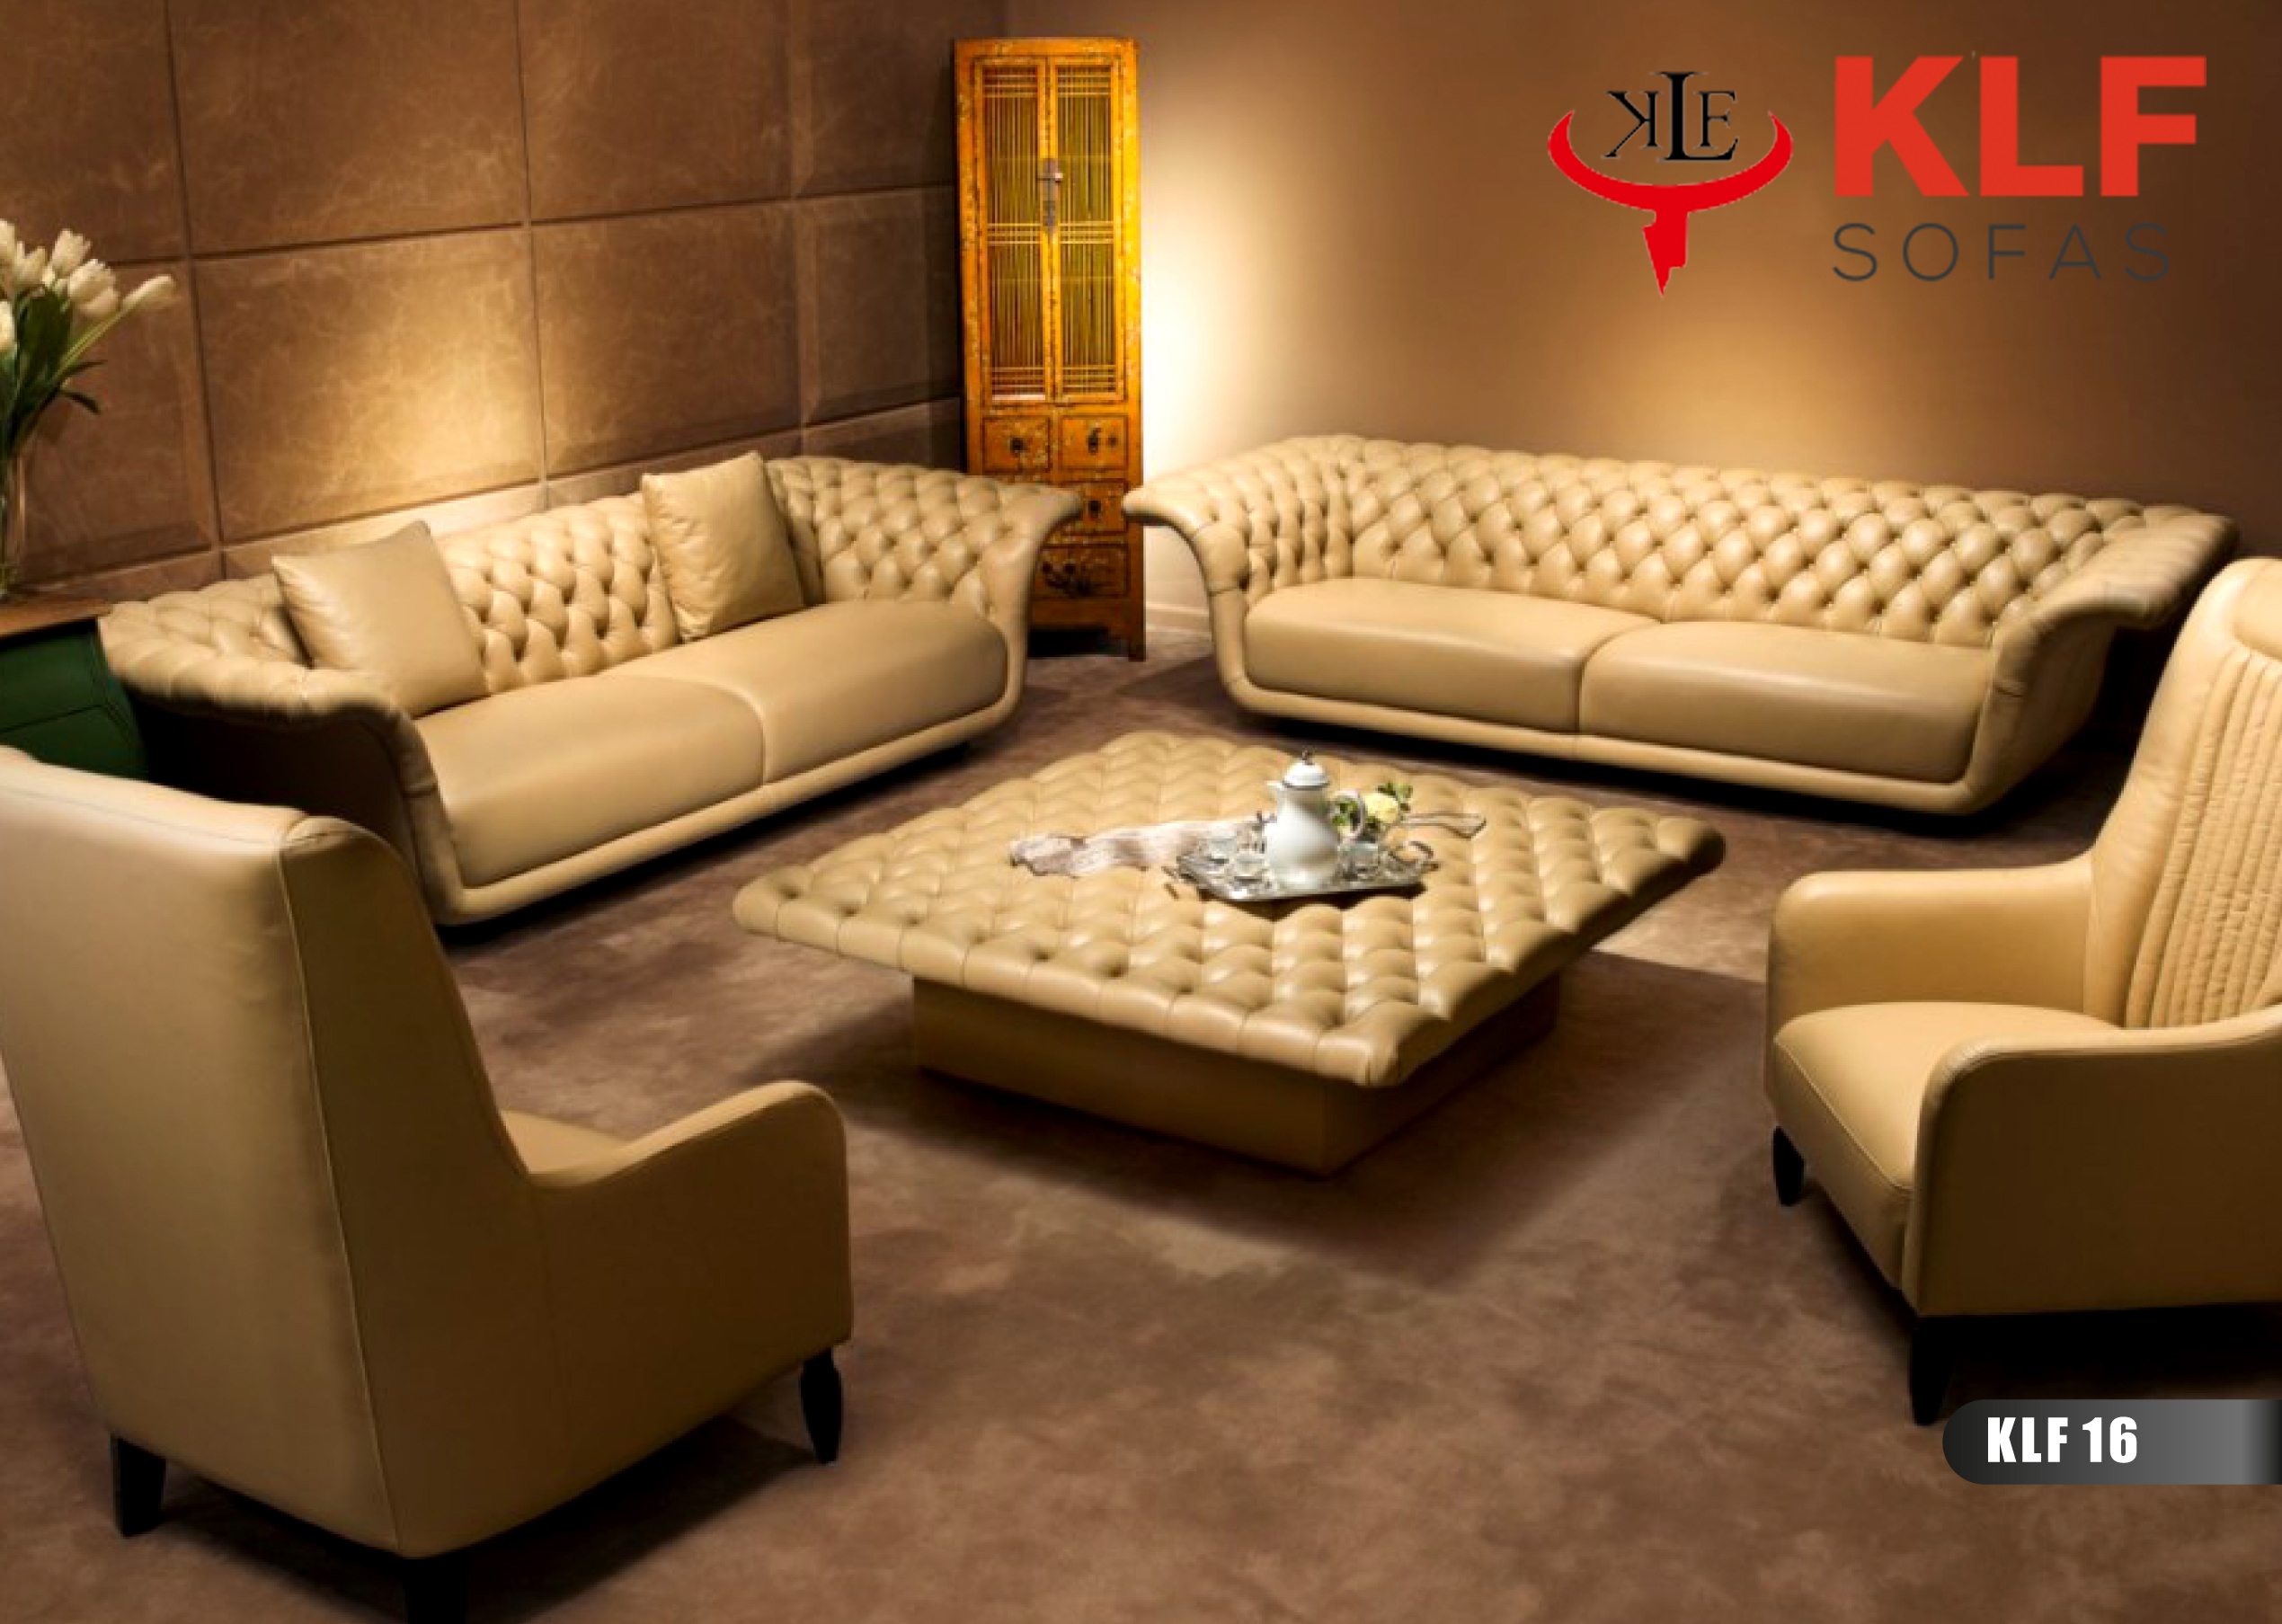 KLF Luxury Sofas